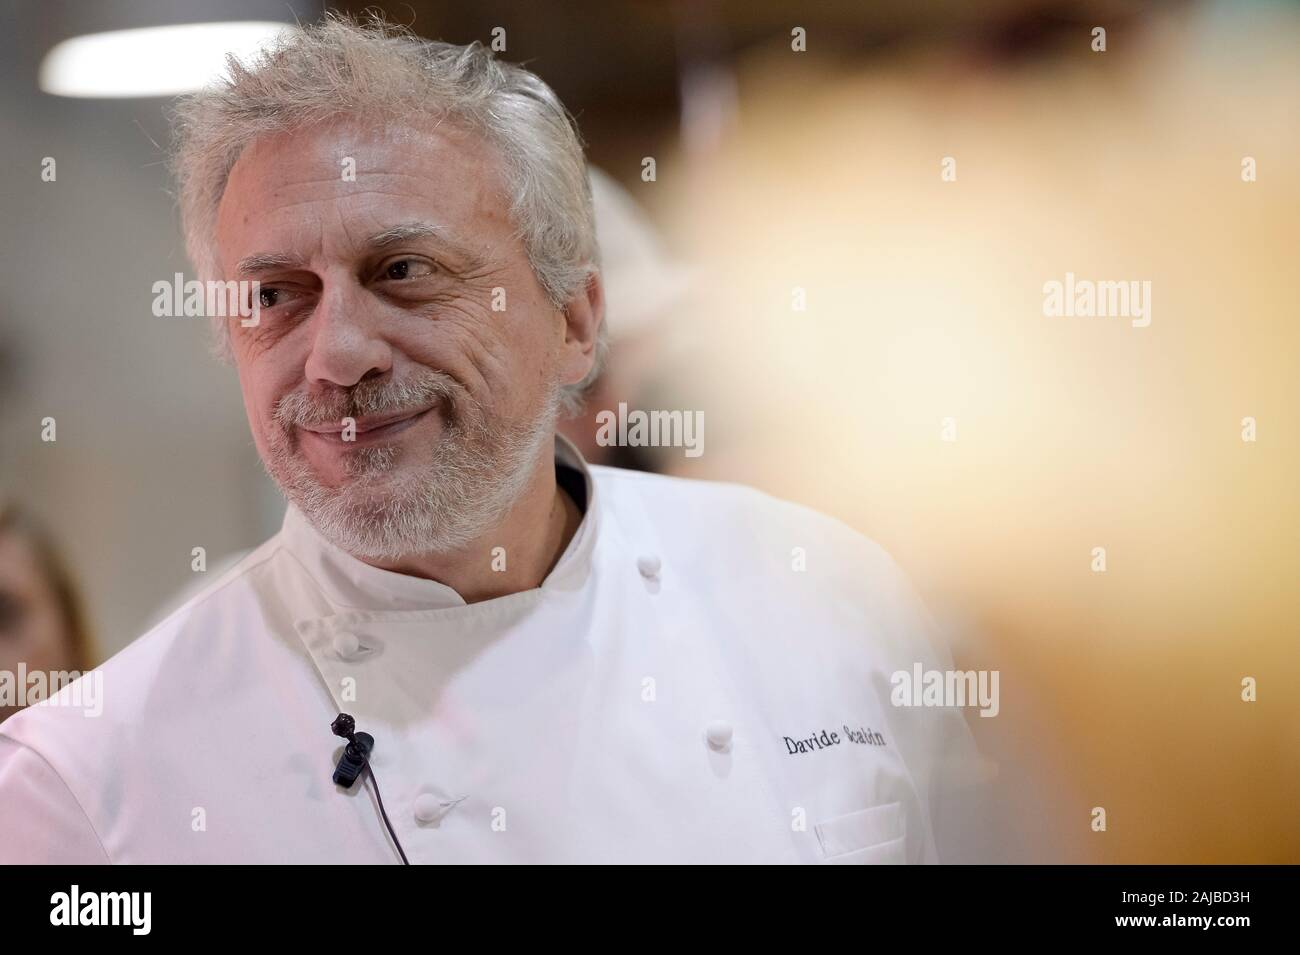 Turin, Italy - 27 January, 2017: The awards winning chef Davide Scabin looks on during the celebration for Eataly 10th anniversay. Eataly is the largest Italian marketplace in the world. Credit: Nicolò Campo/Alamy Live News Stock Photo